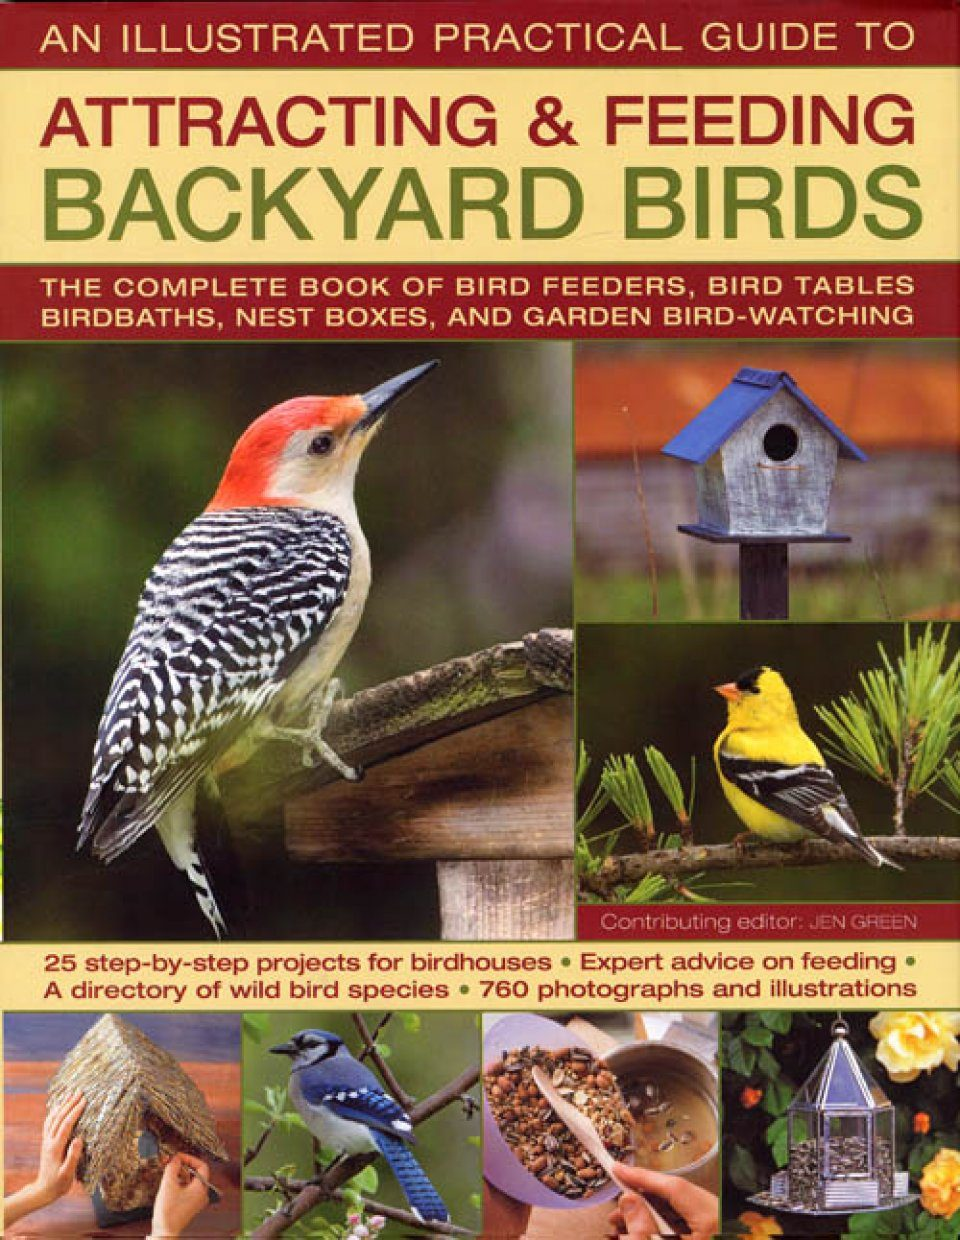 The Illustrated Practical Guide to Attracting and Feeding Backyard Birds